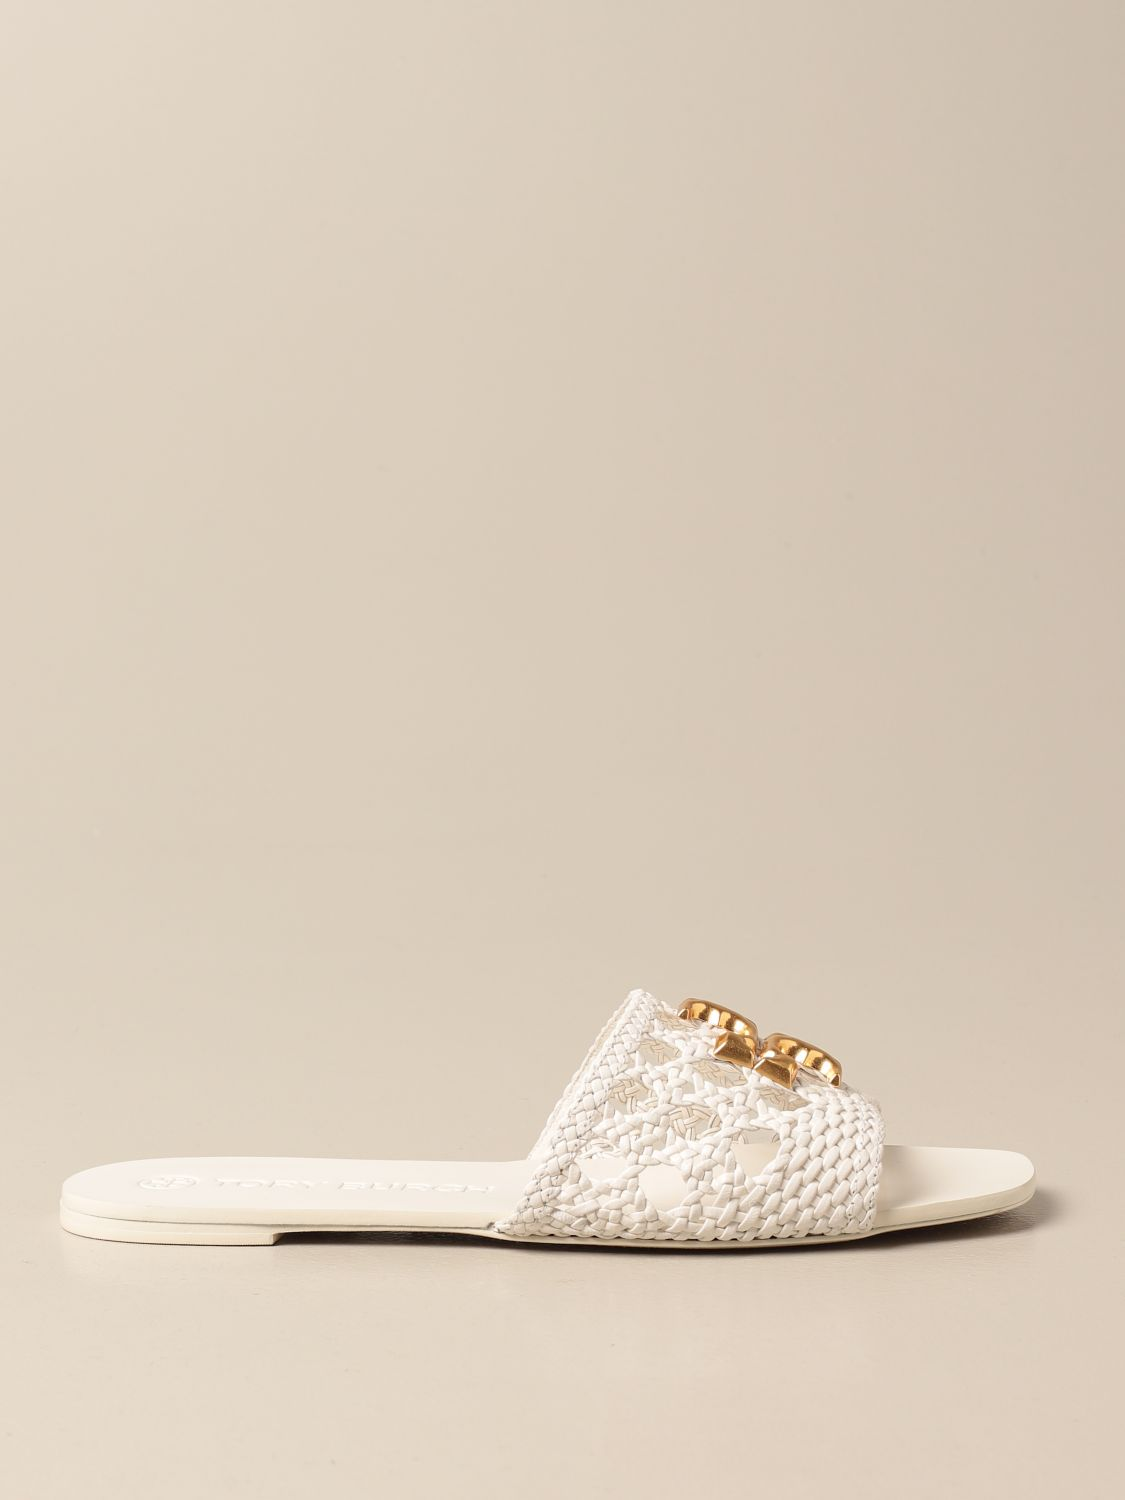 Flat sandals Tory Burch: Tory Burch sandals in woven leather with logo ivory 1